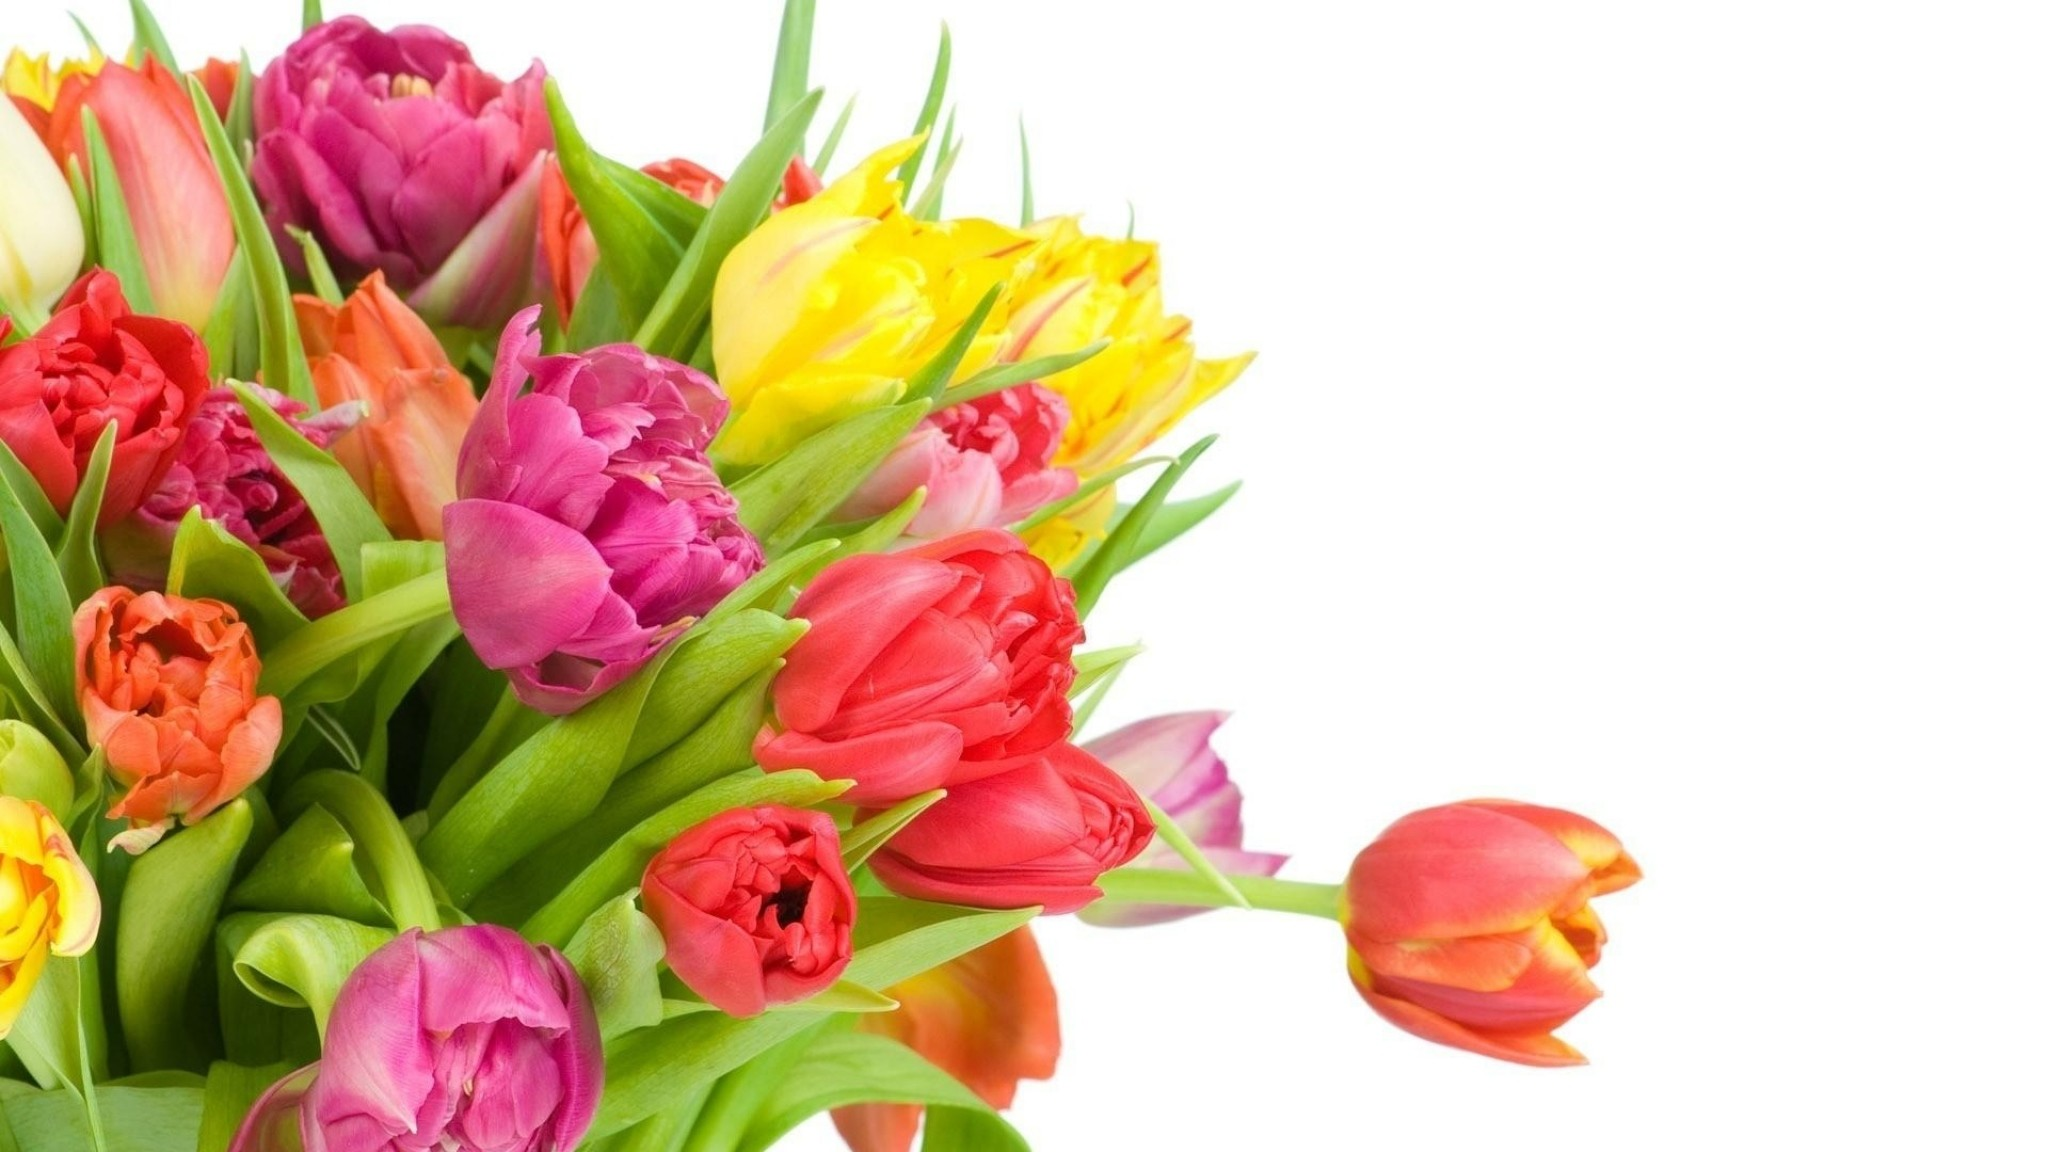 Wallpaper tulips, flowers, bouquet, bright, white background